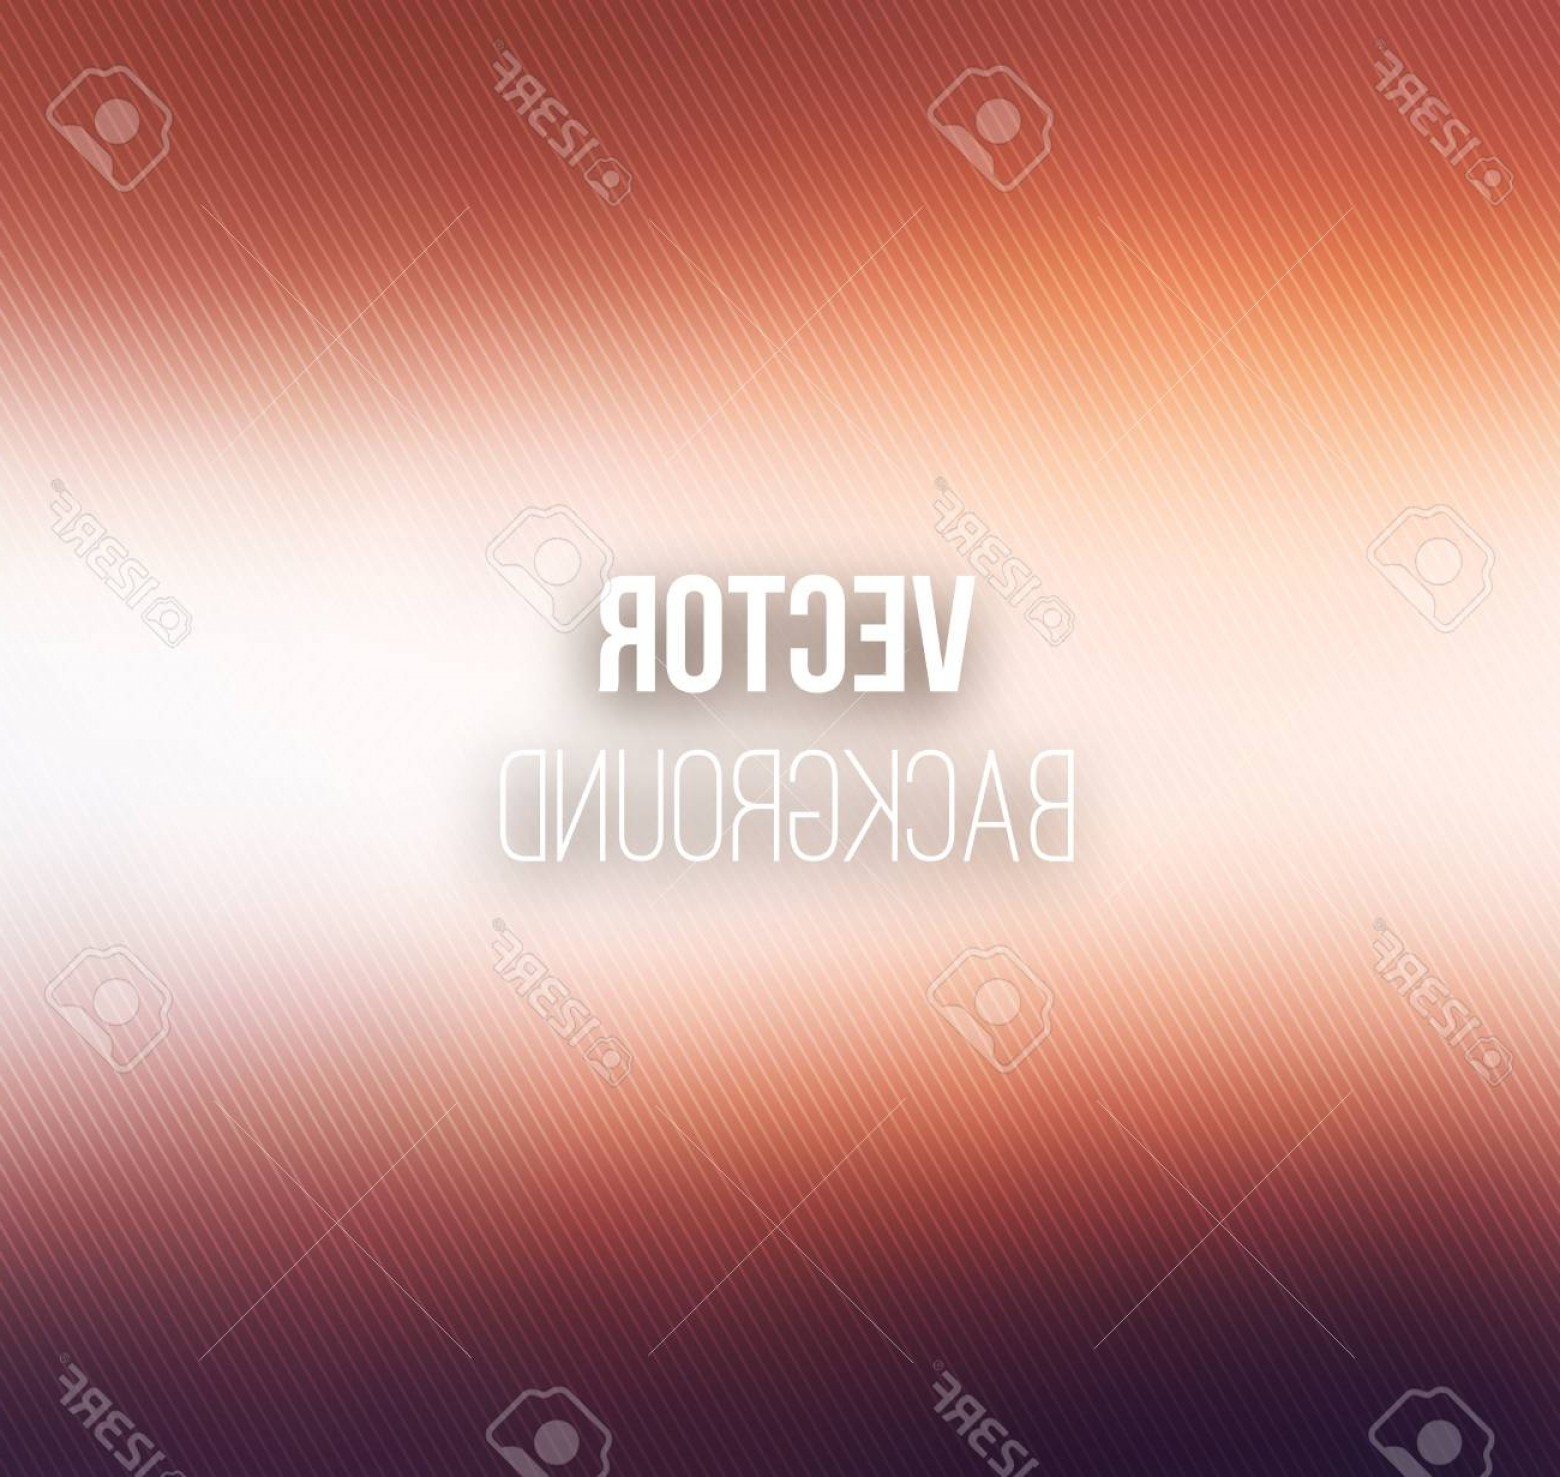 Transparent Brown Vector Background: Photostock Vector Brown Red Color Blurred Abstract Vector Background Smooth Gradient Backdrop With Transparent Diagona